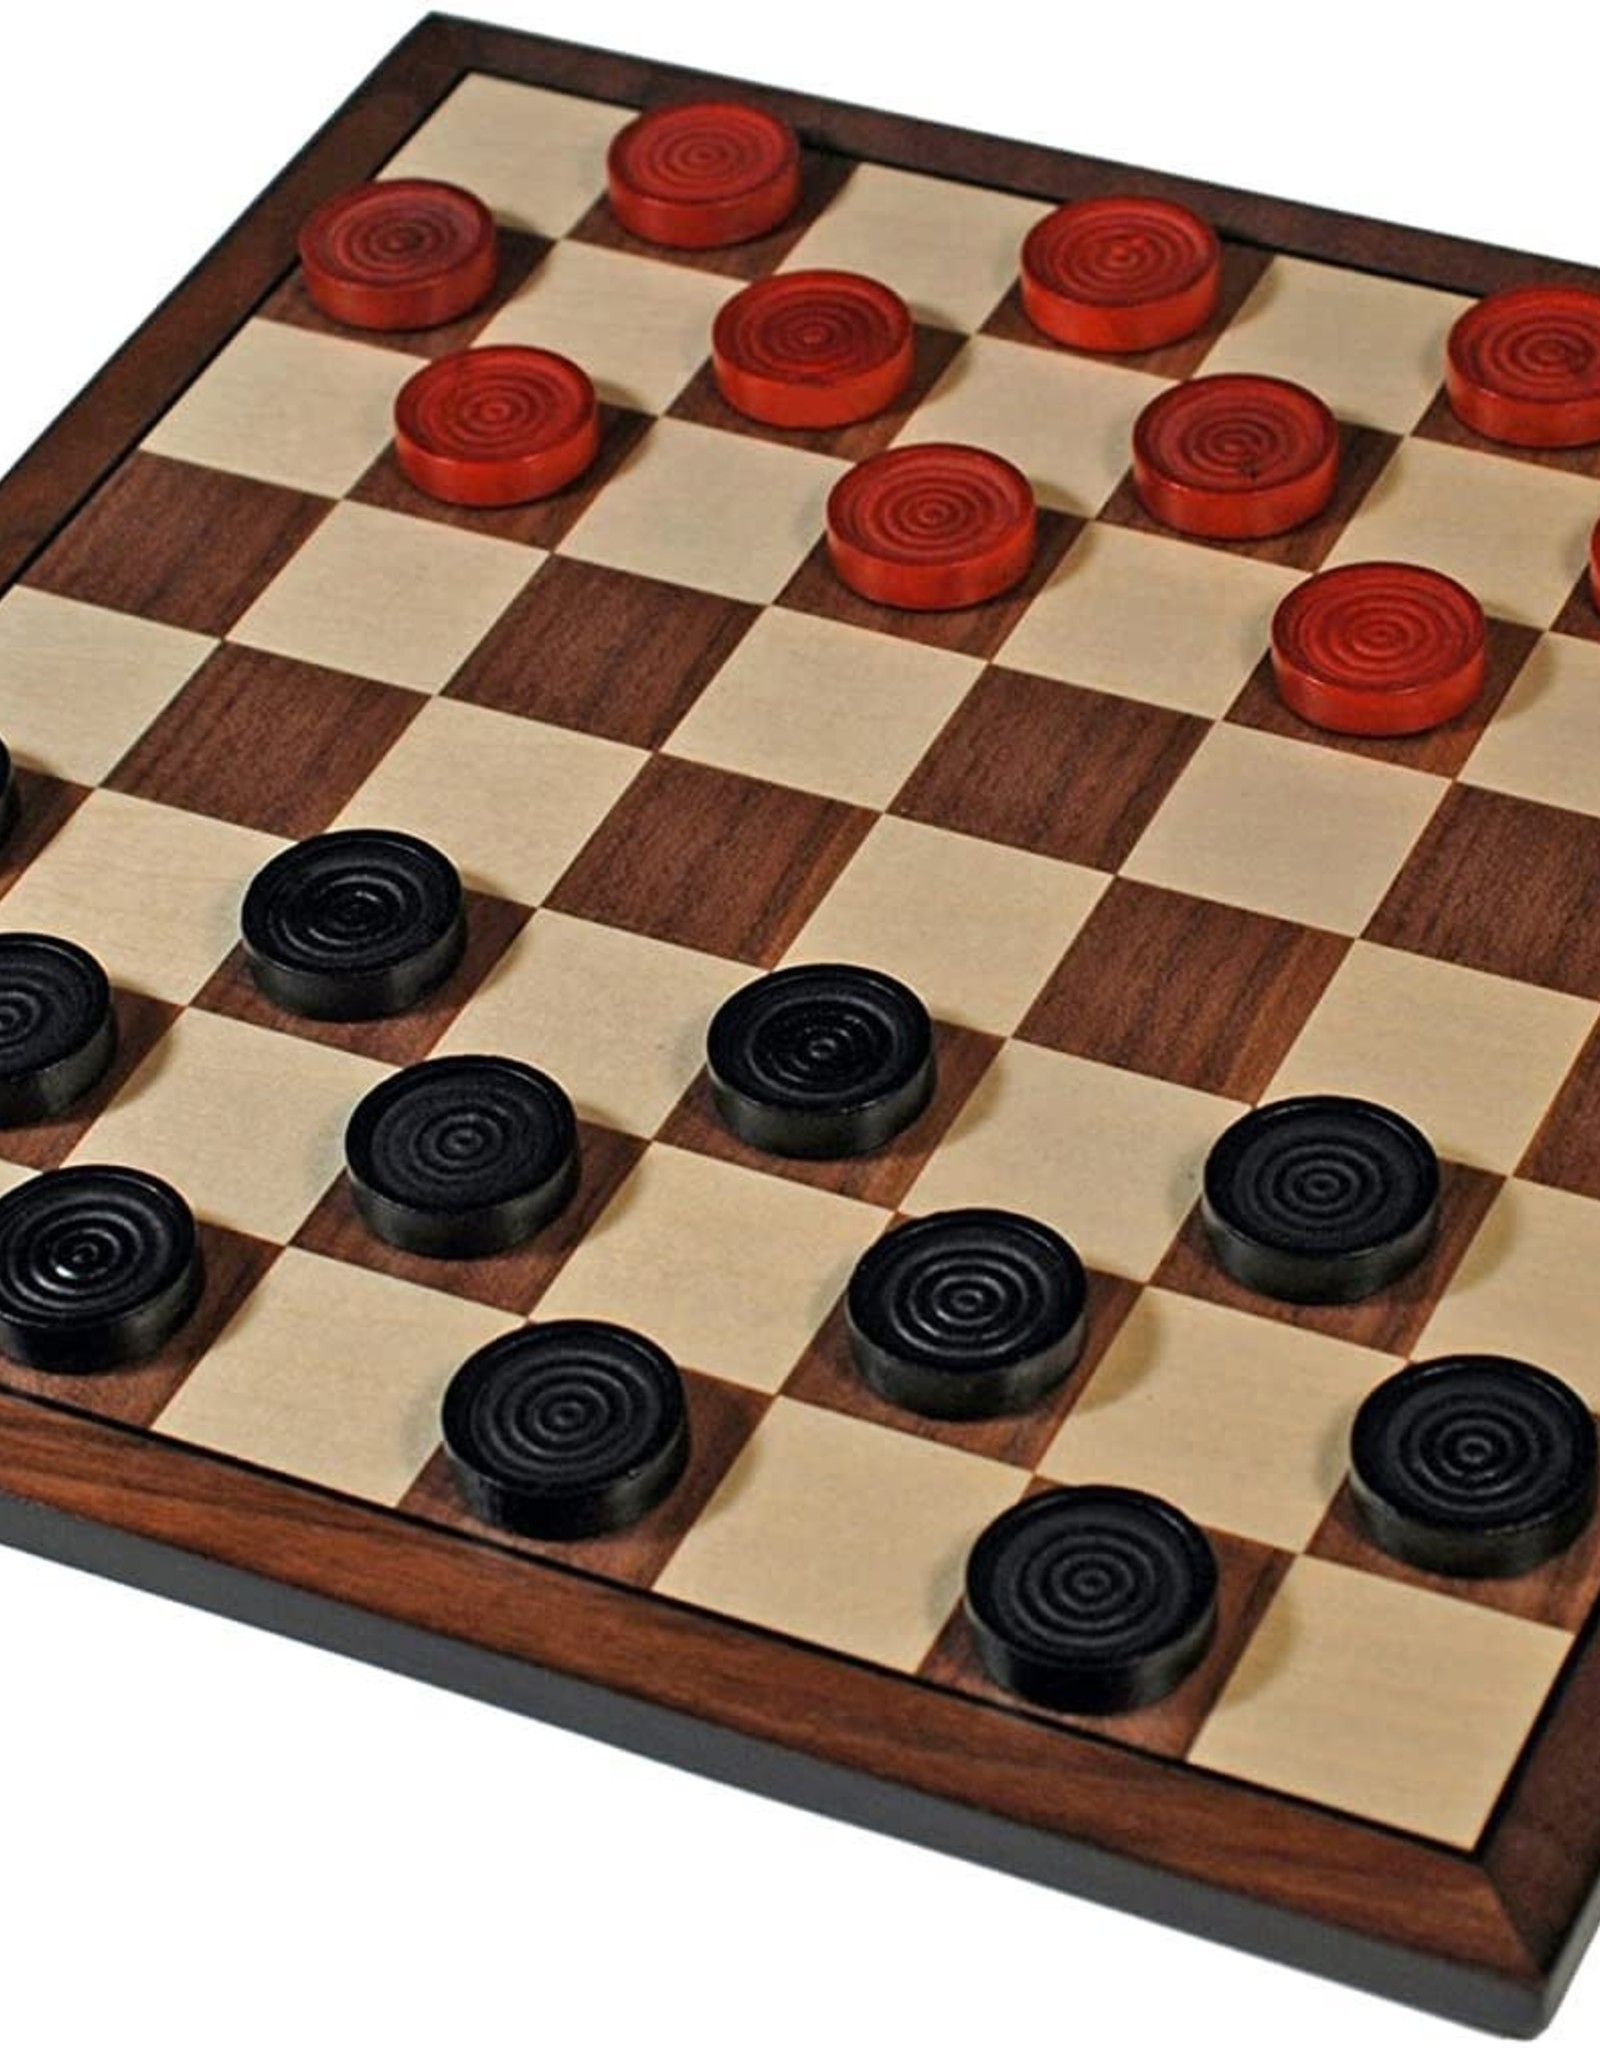 Checkers Set: Black and Red Wooden Board